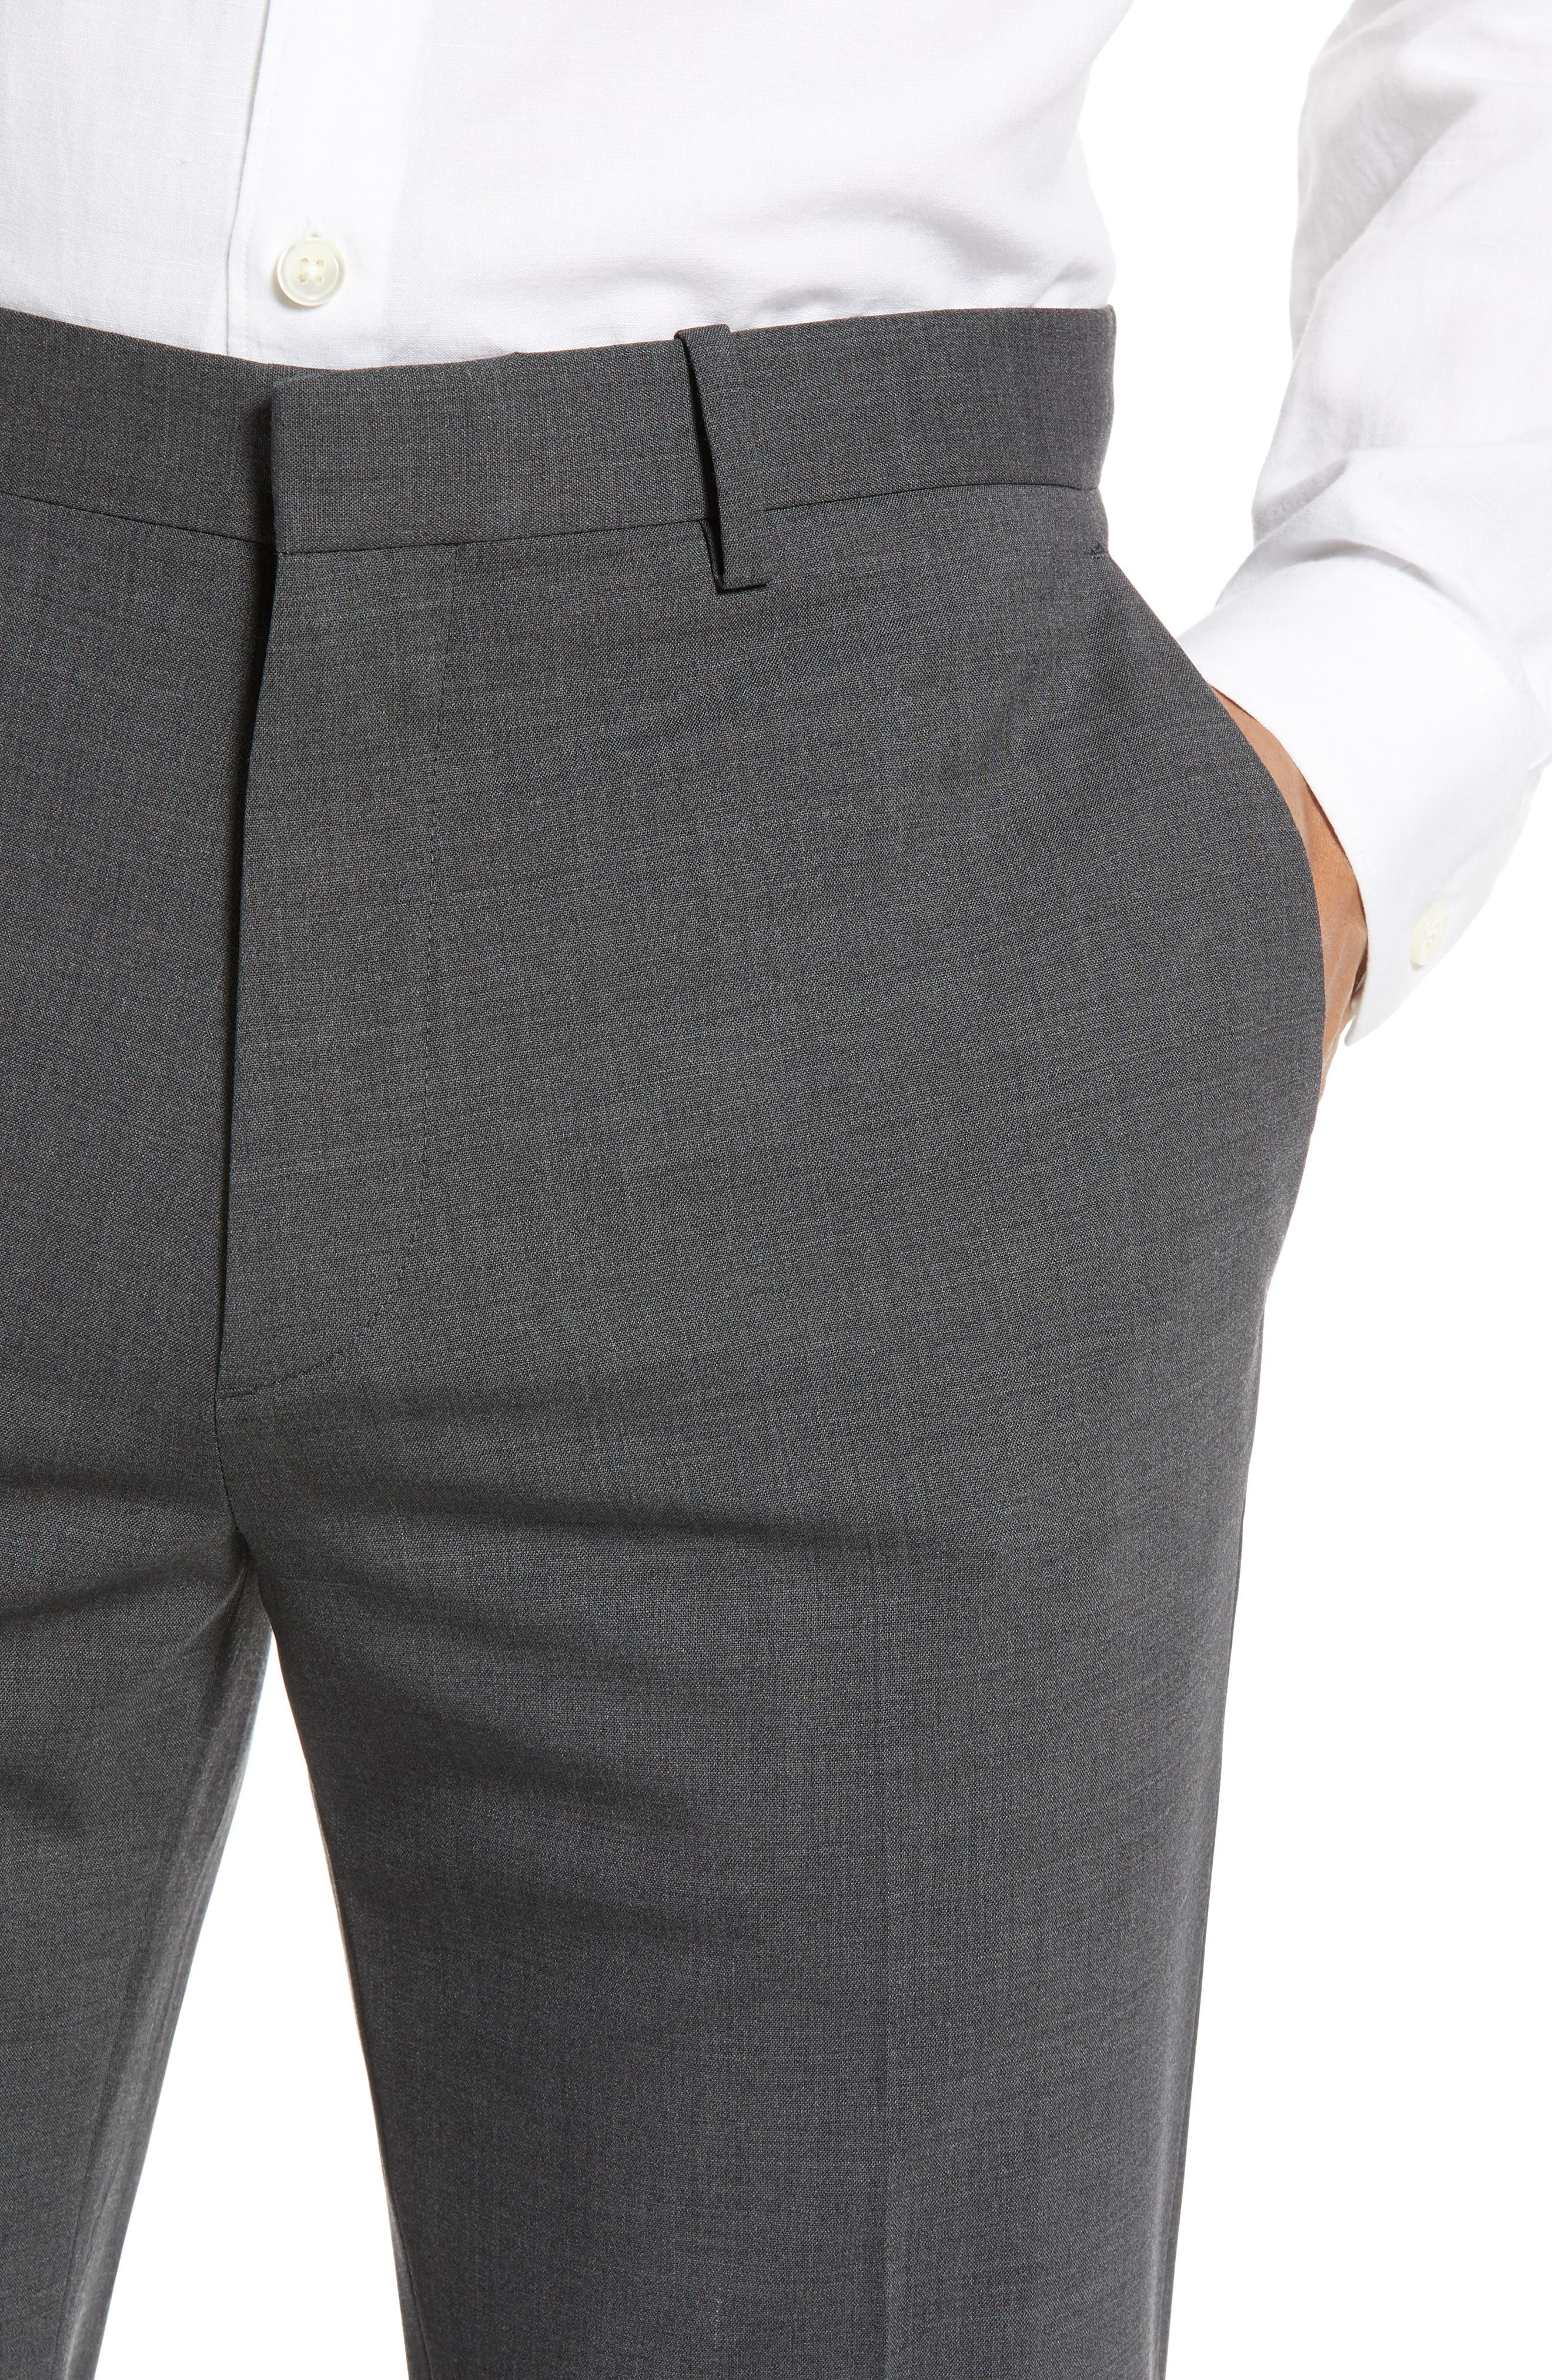 THEORY, Mayer New Tailor 2 Wool Trousers, Alternate thumbnail 4, color, CHARCOAL